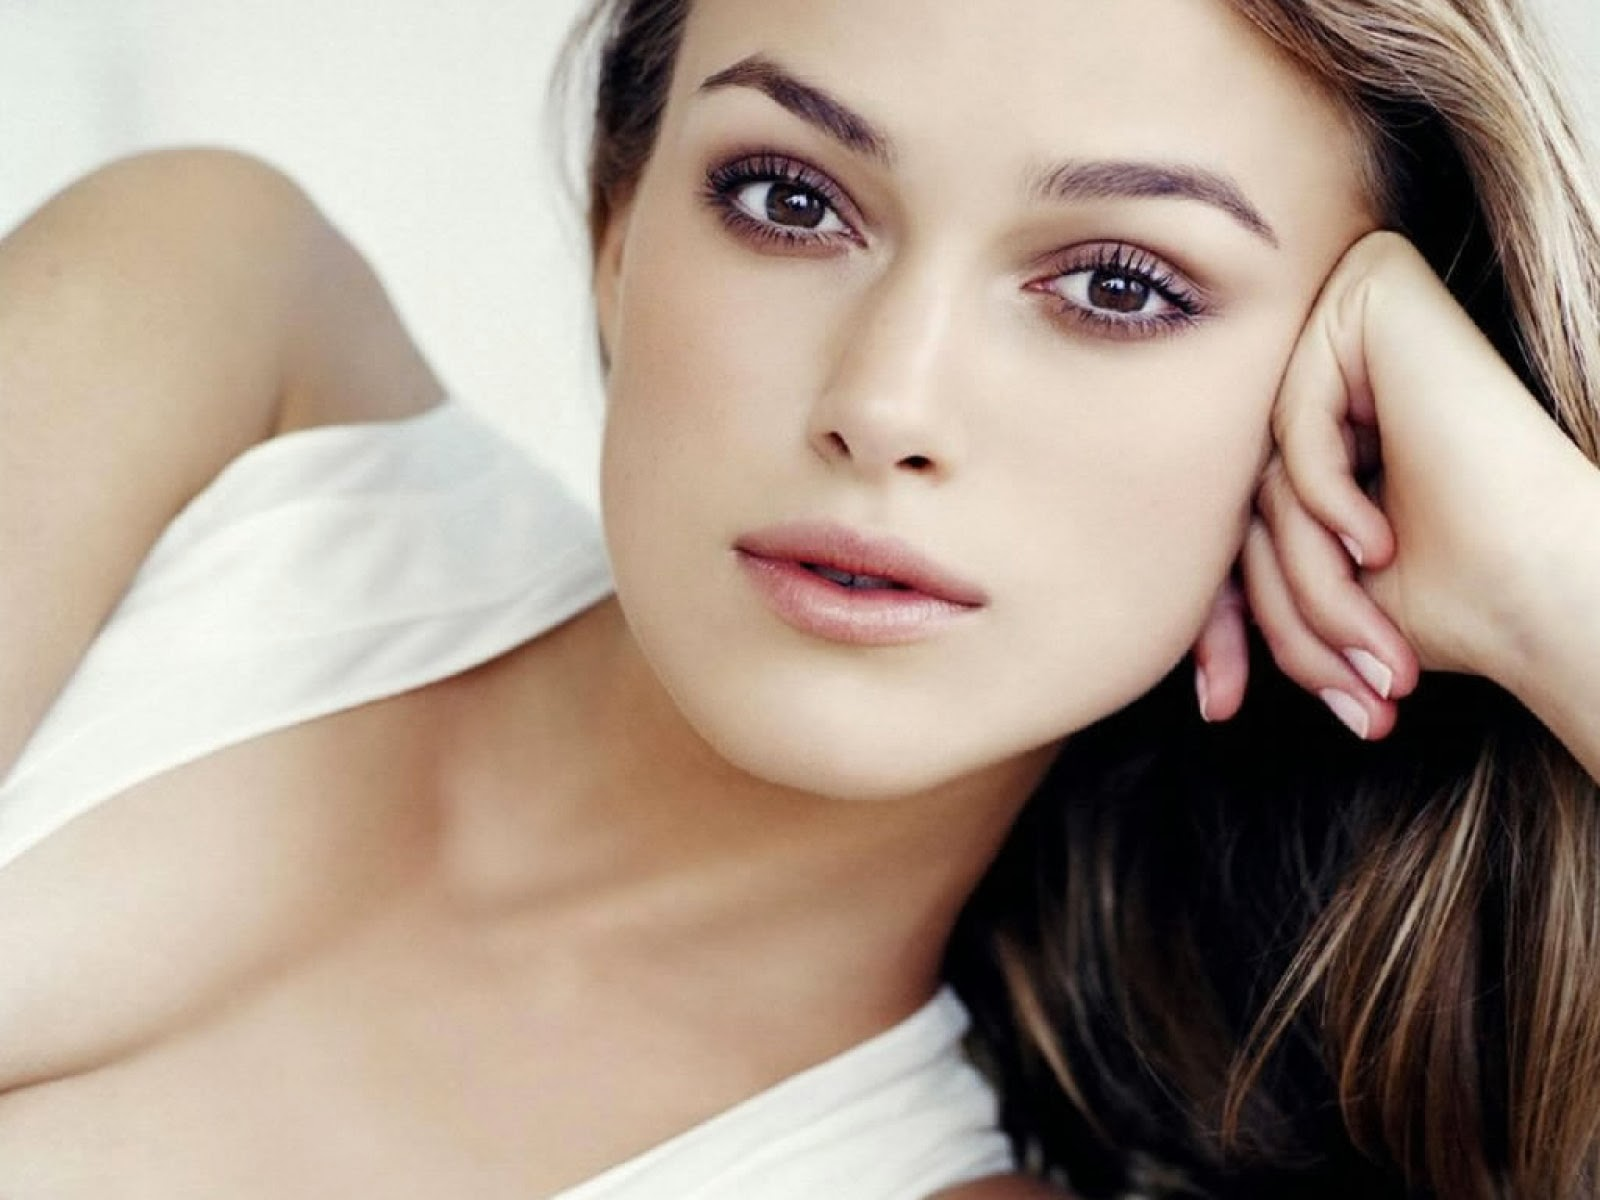 Keira Knightley HD Wallpapers Free Download